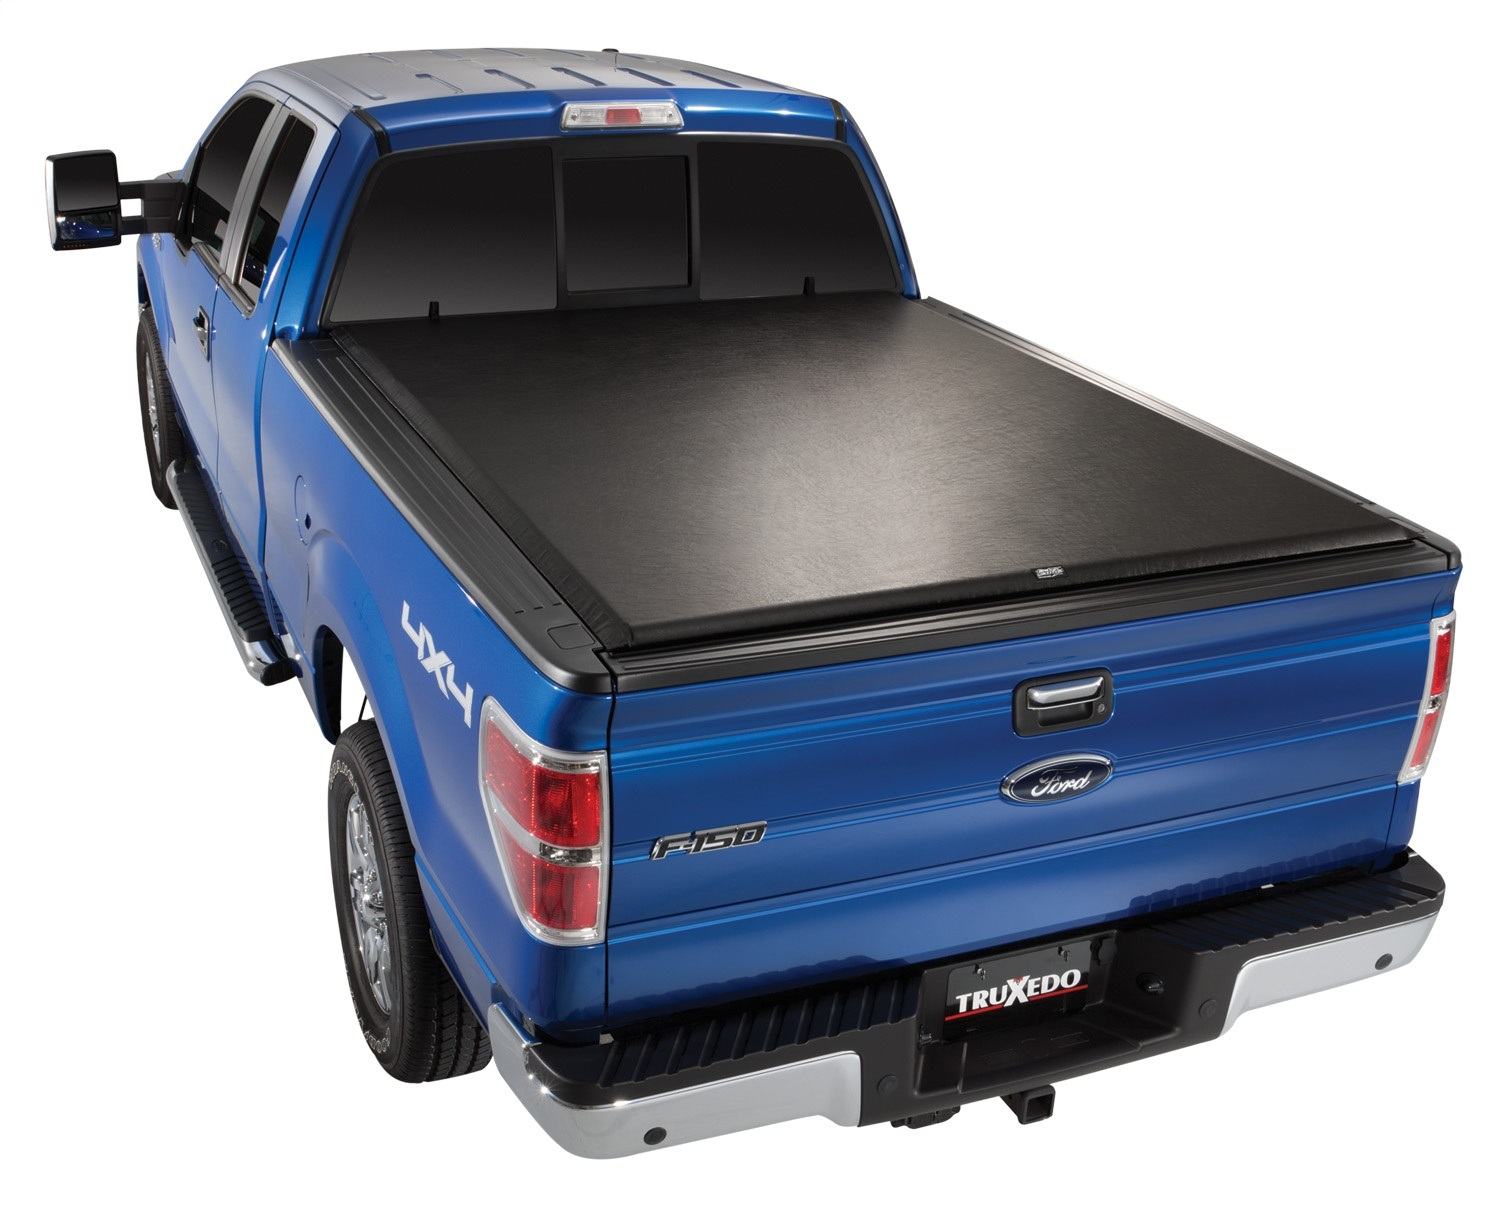 Truxedo (Shur-co) Tonneau Cover (897601)